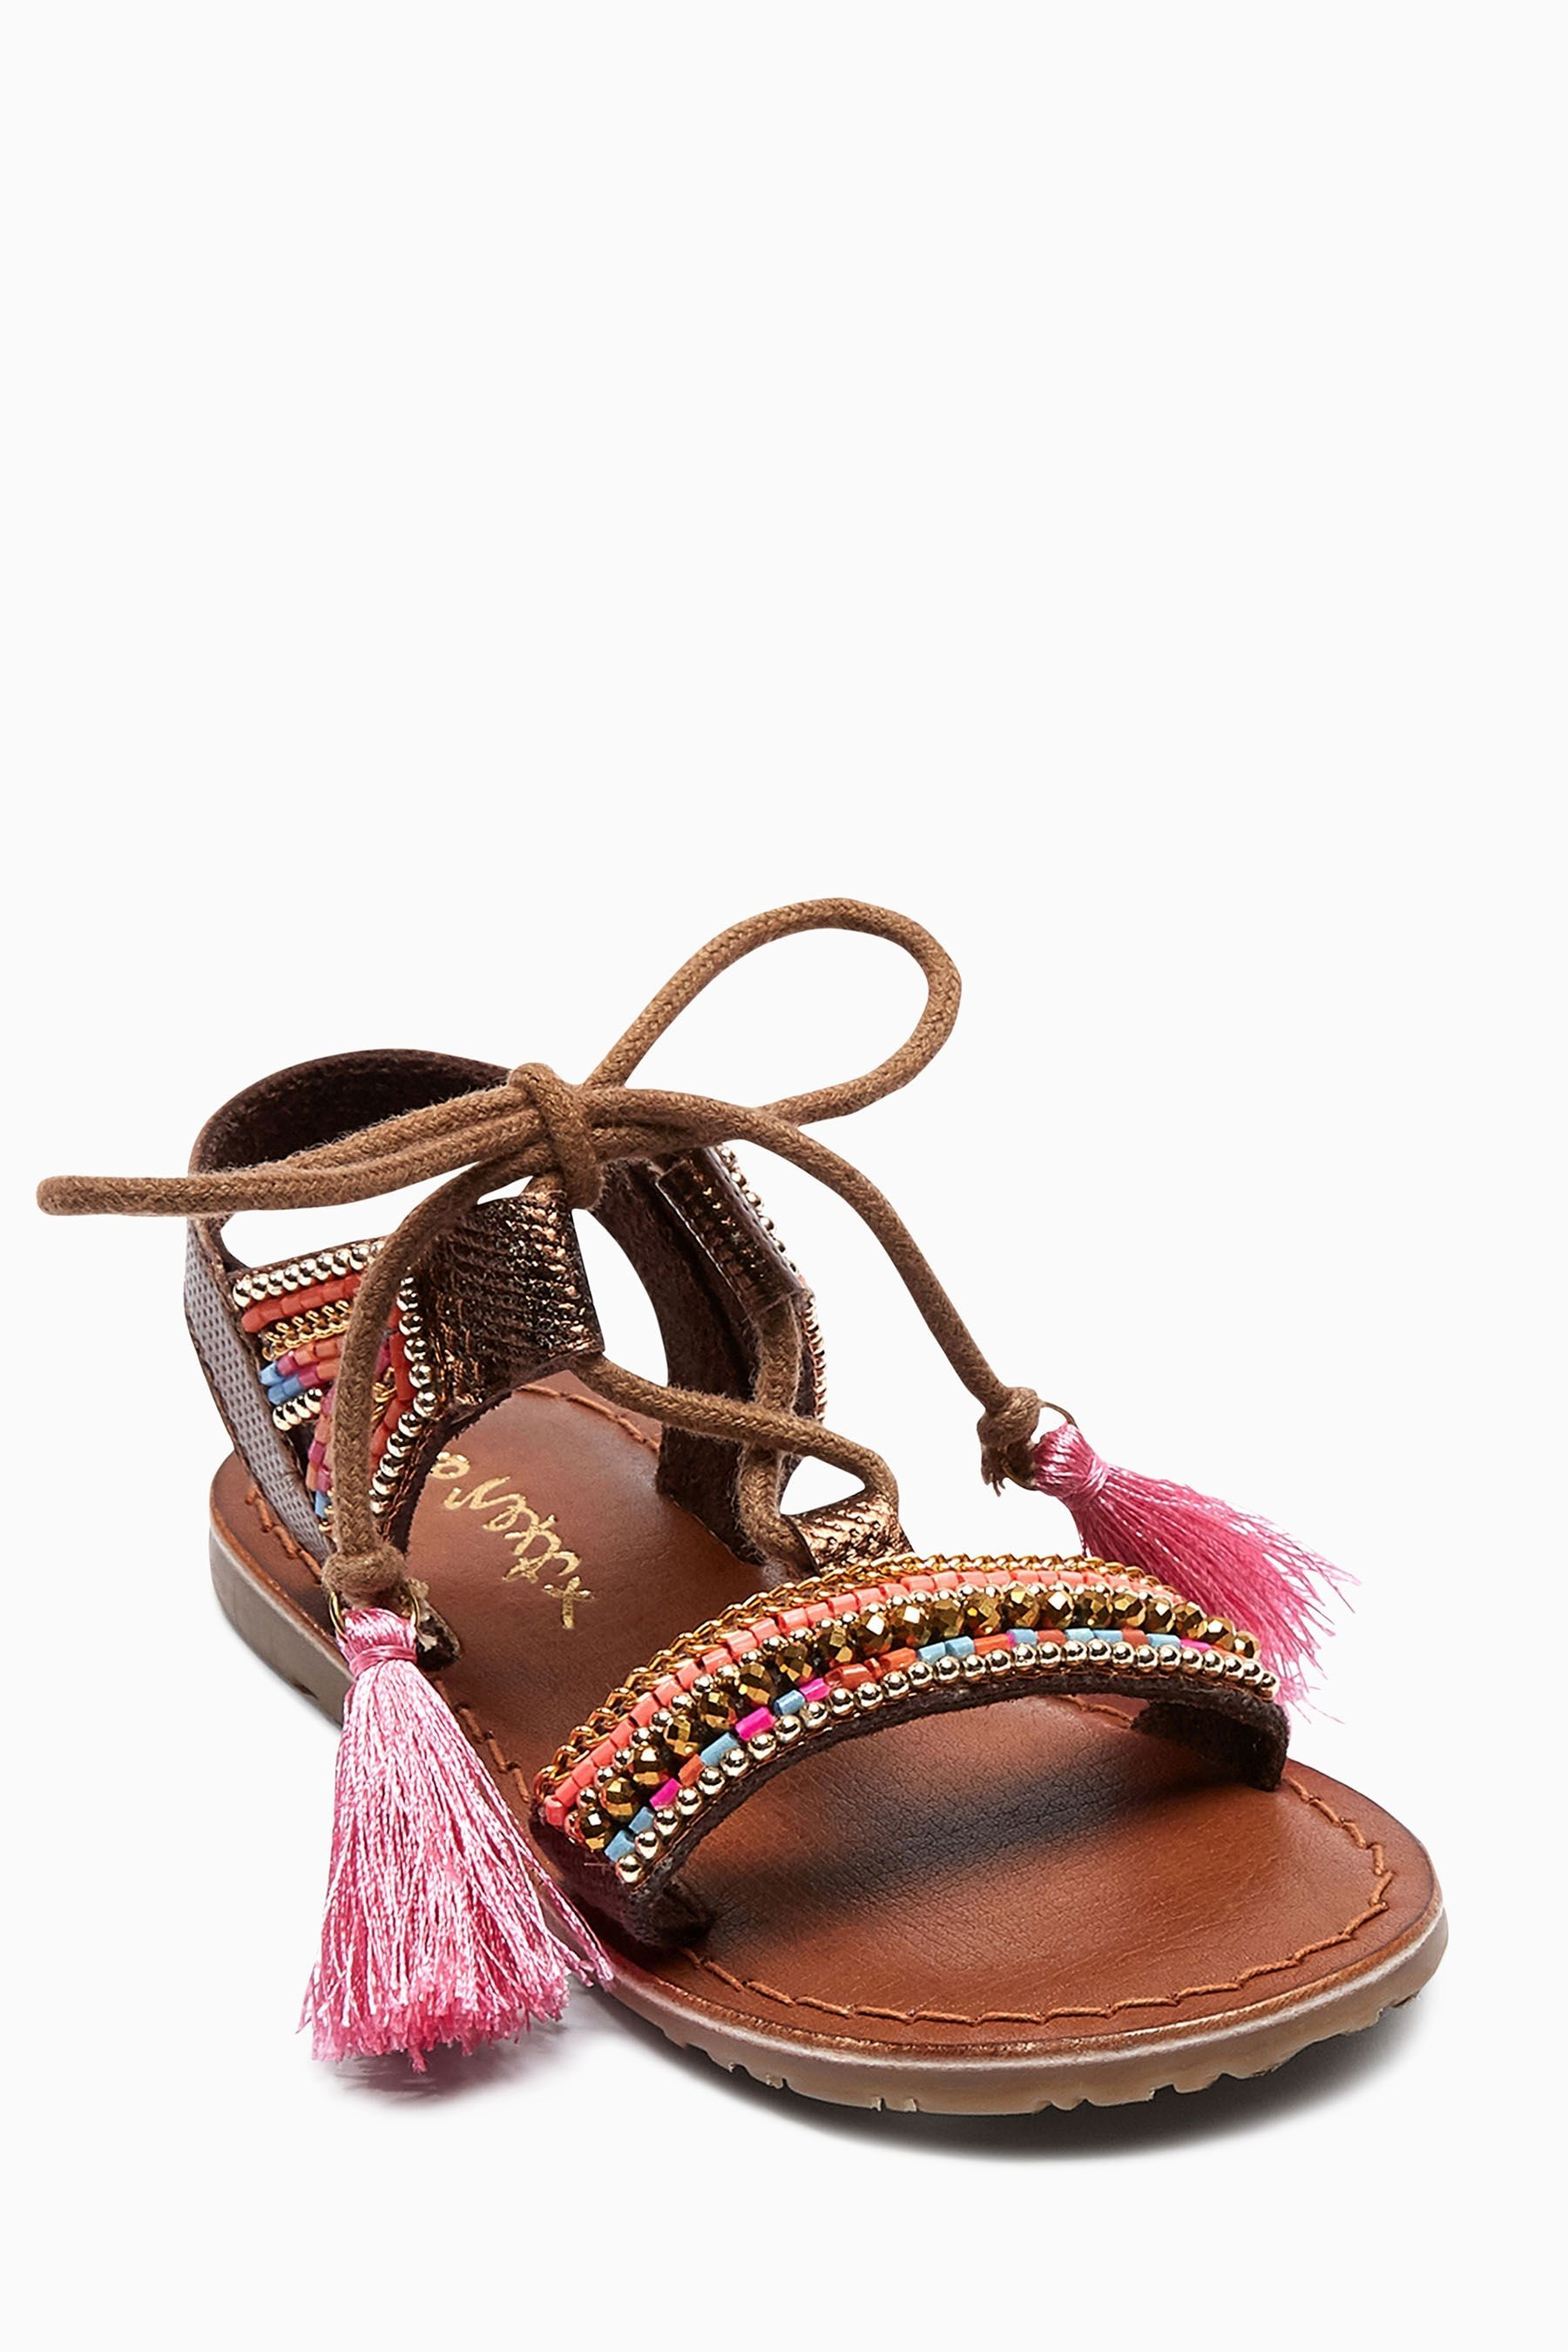 Buy Tan Embellished Leather Sandals (Younger Girls) from